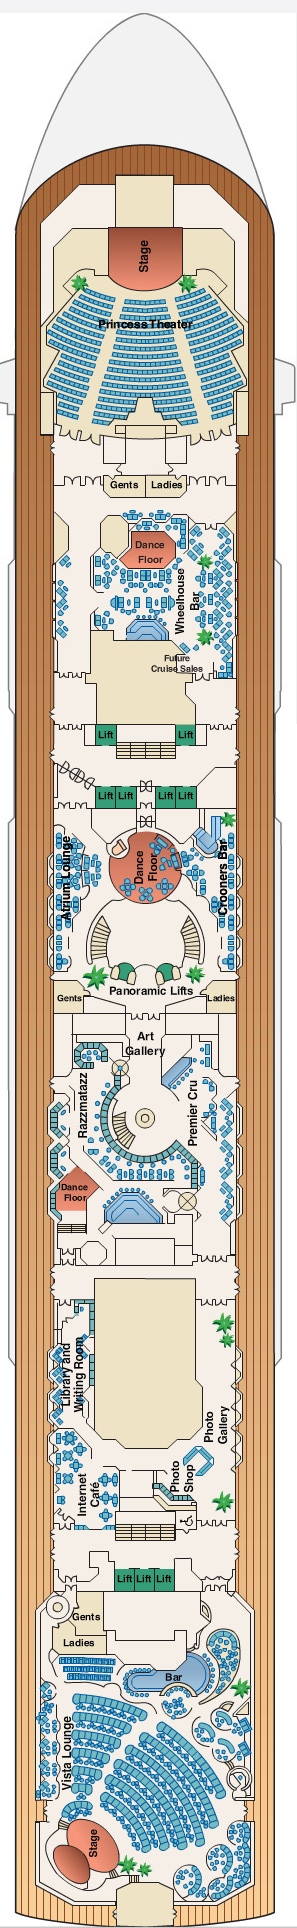 Sun Princess Promenade Deck 7 layout